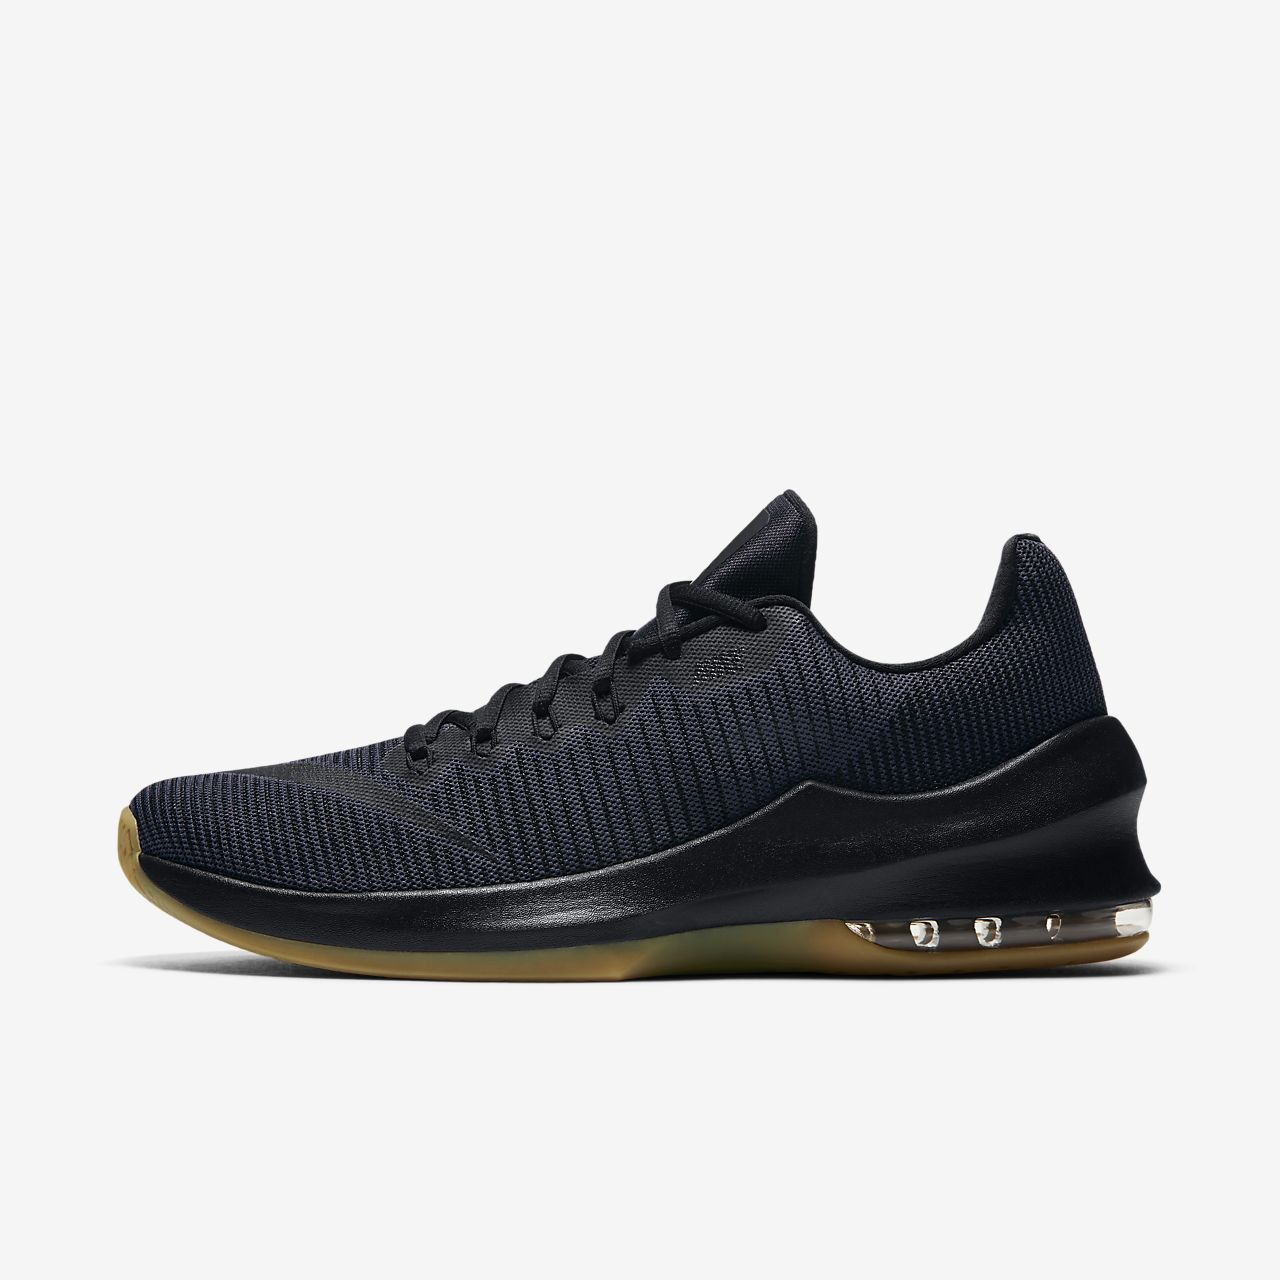 AIR MAX INFURIATE 2 LOW - Basketballschuh - light carbon/white/dark obsidian Finish Günstig Online t7yj7JN